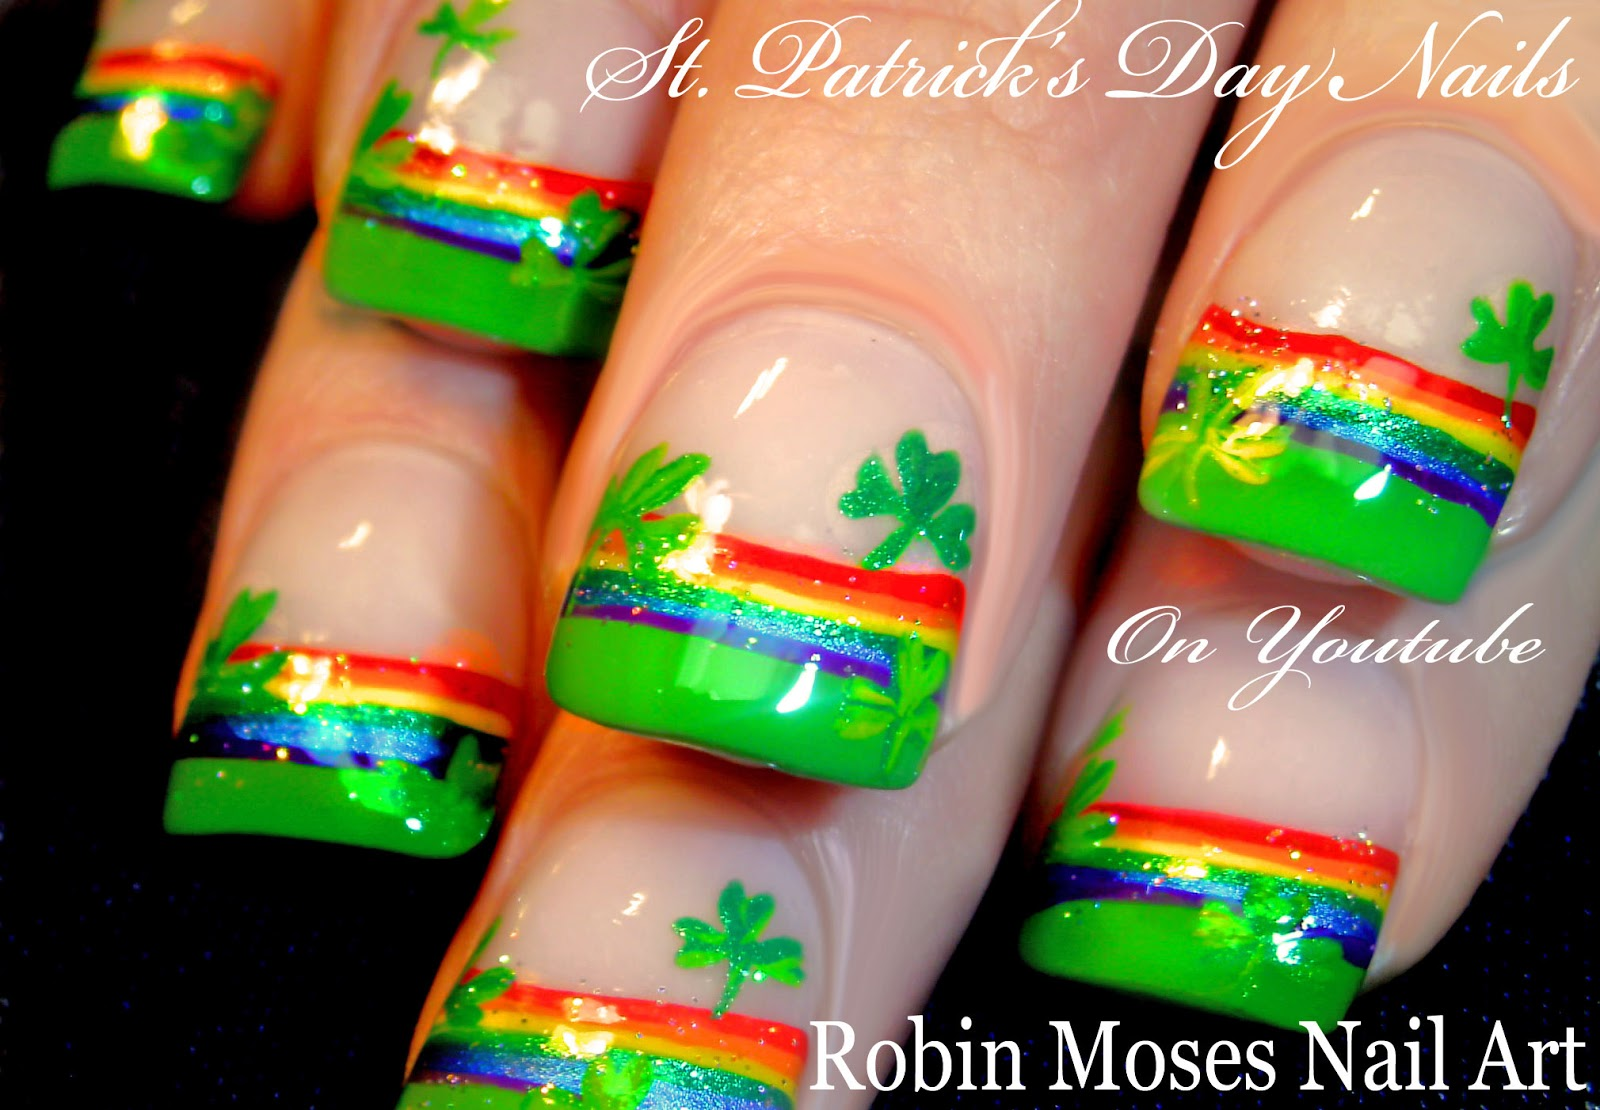 Robin moses nail art st patricks day nail art 2016 st paddys st patricks day nail art 2016 st paddys nails st patricks nails shamrock nails shamrock design prinsesfo Gallery